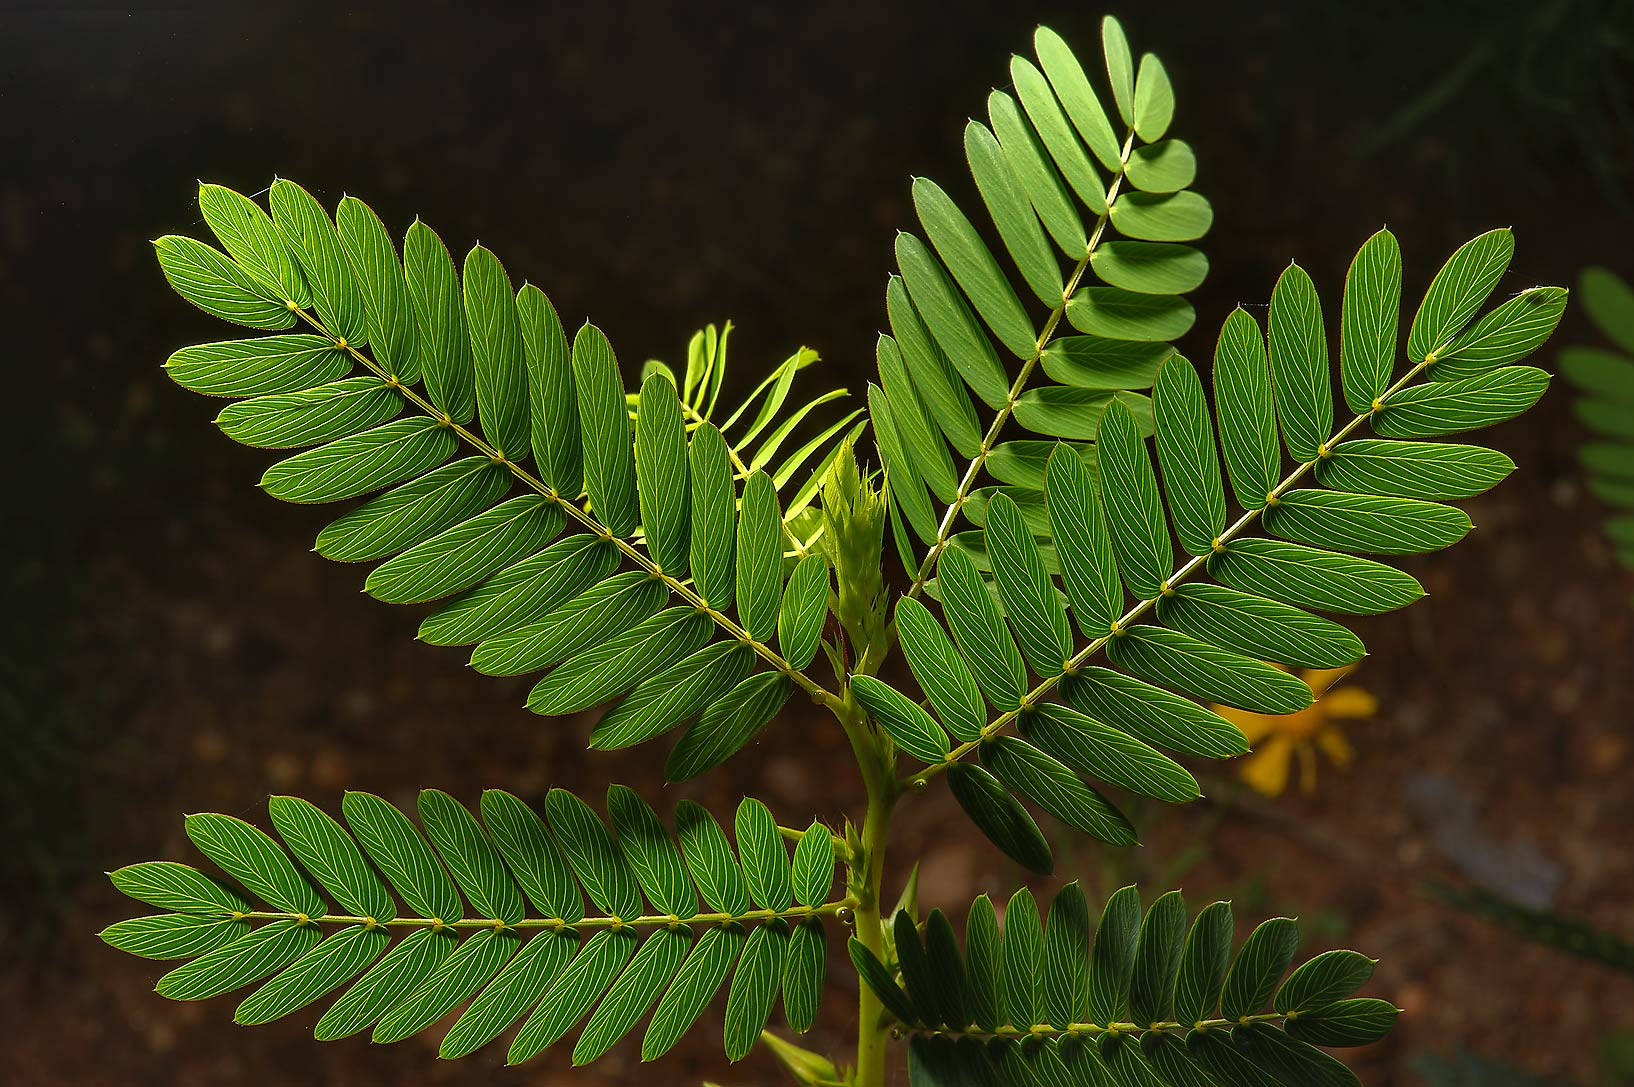 Backlit leaves of Partridge pea (Cassia...Creek Park. College Station, Texas